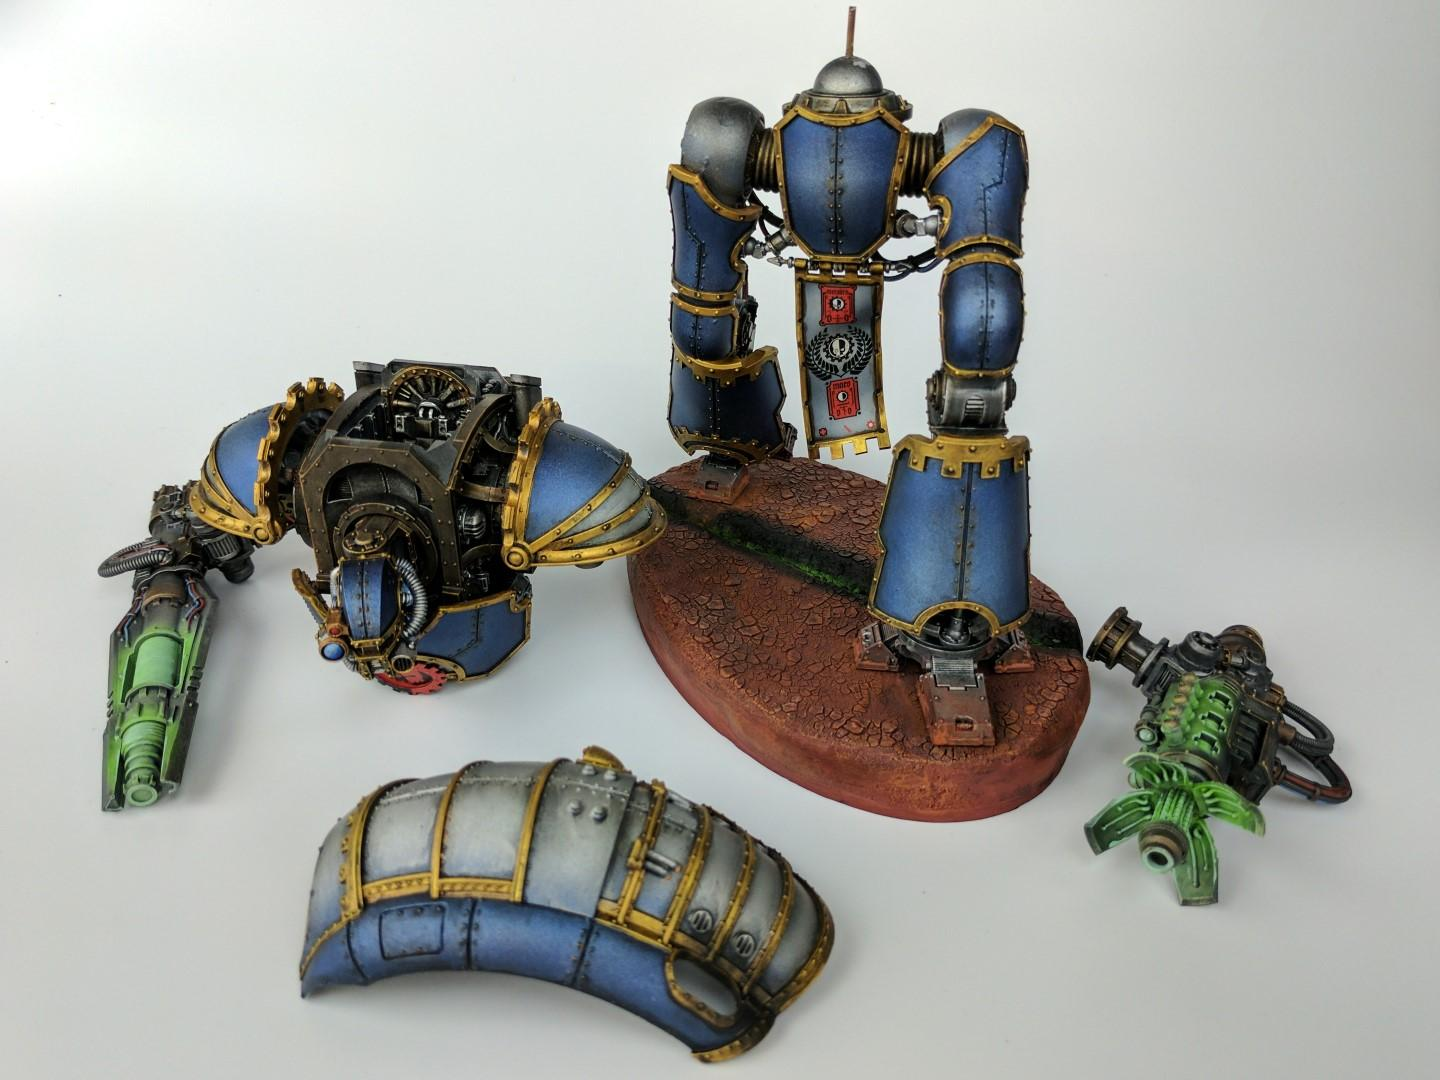 Atrapos, Blue, Cult, Forge, Imperial, Knights, Mars, Mech, Mechanicum, Mechanicus, World